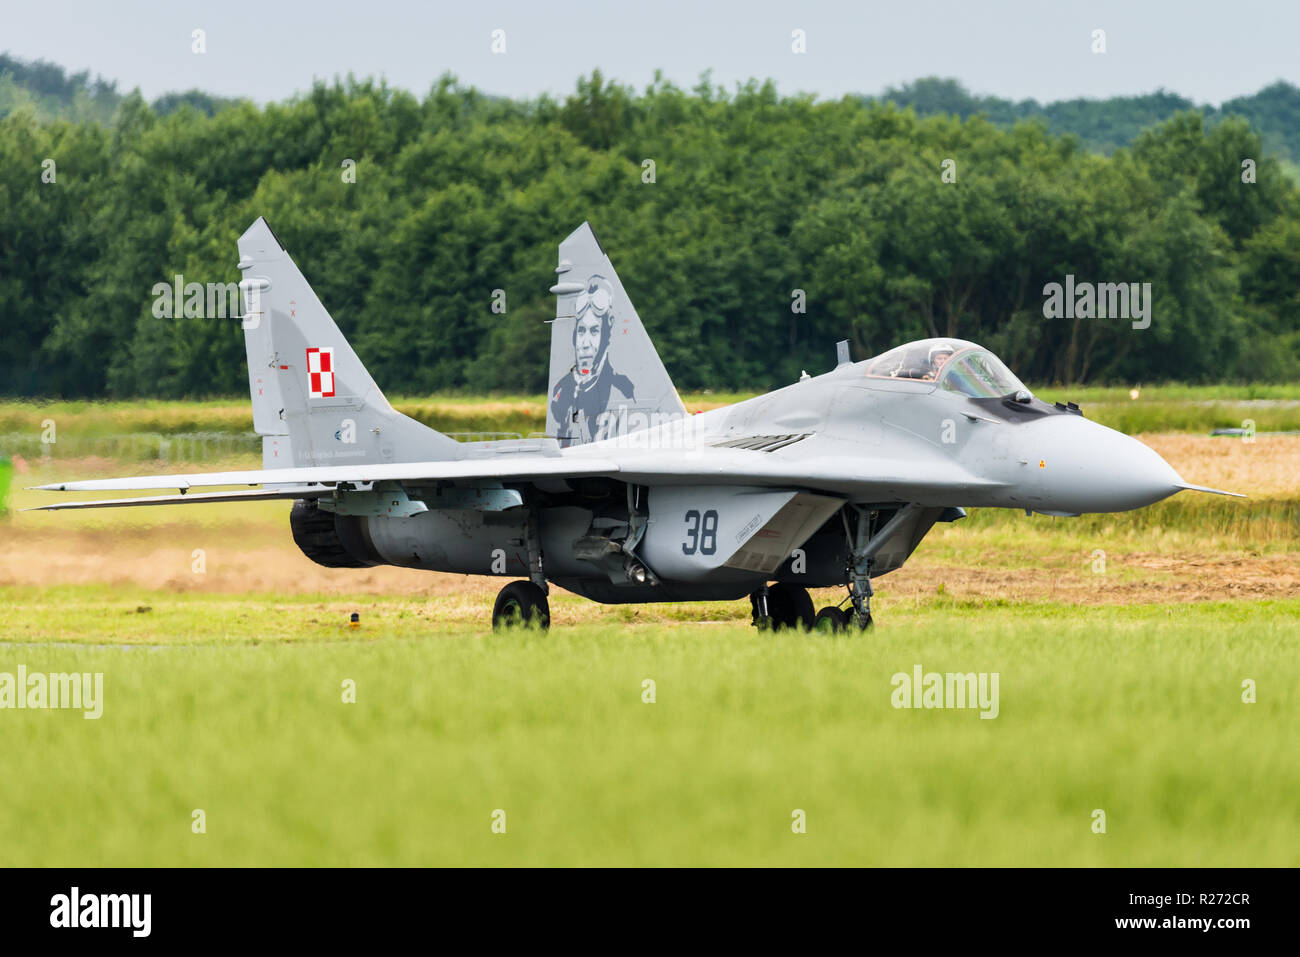 A Mikoyan MiG-29 Fulcrum multirole fighter jet of the Polish Air Force. Stock Photo